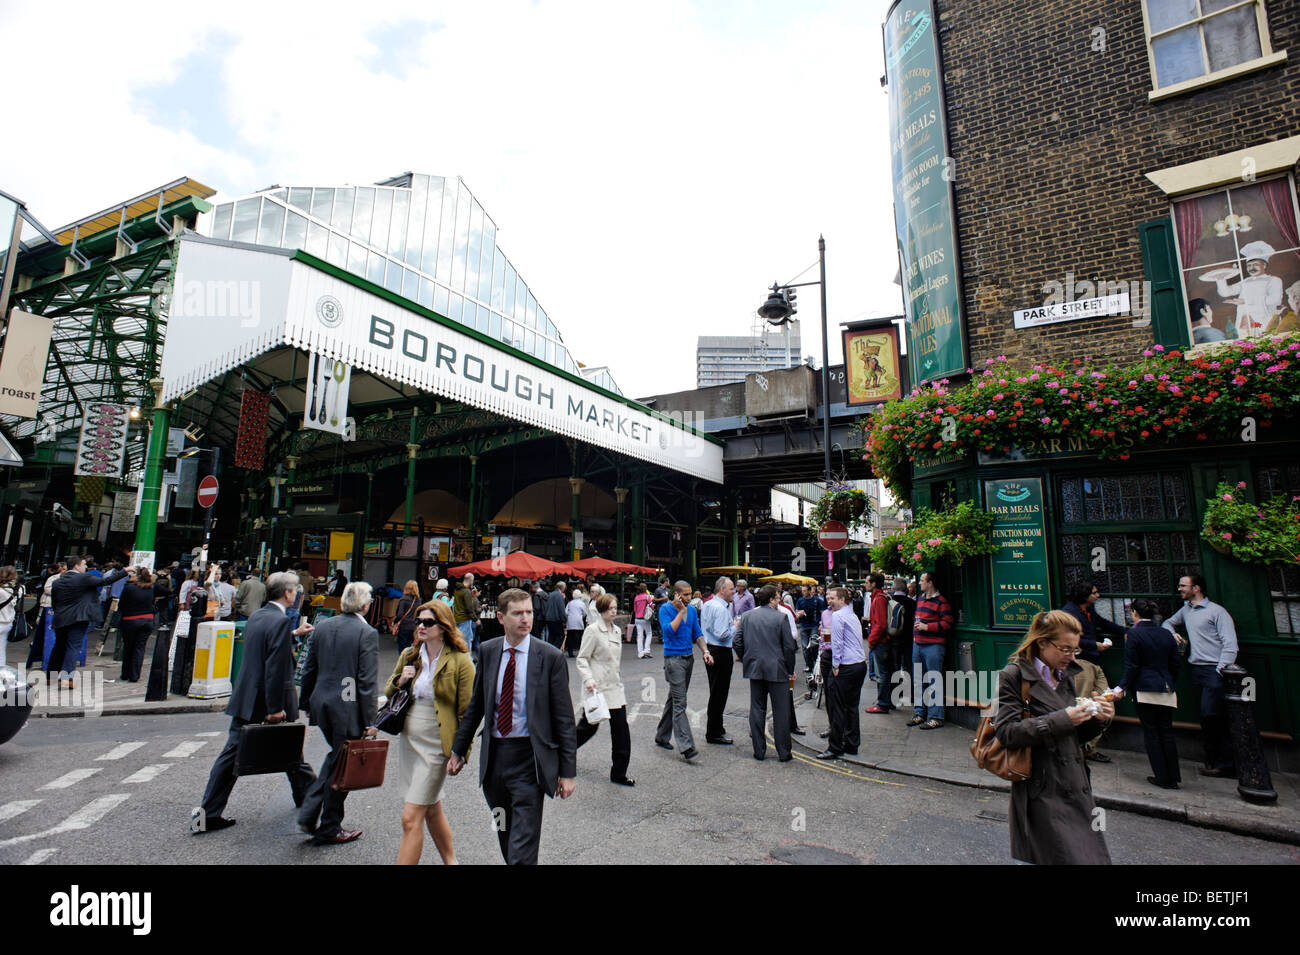 Borough Market. London. Britain. UK - Stock Image